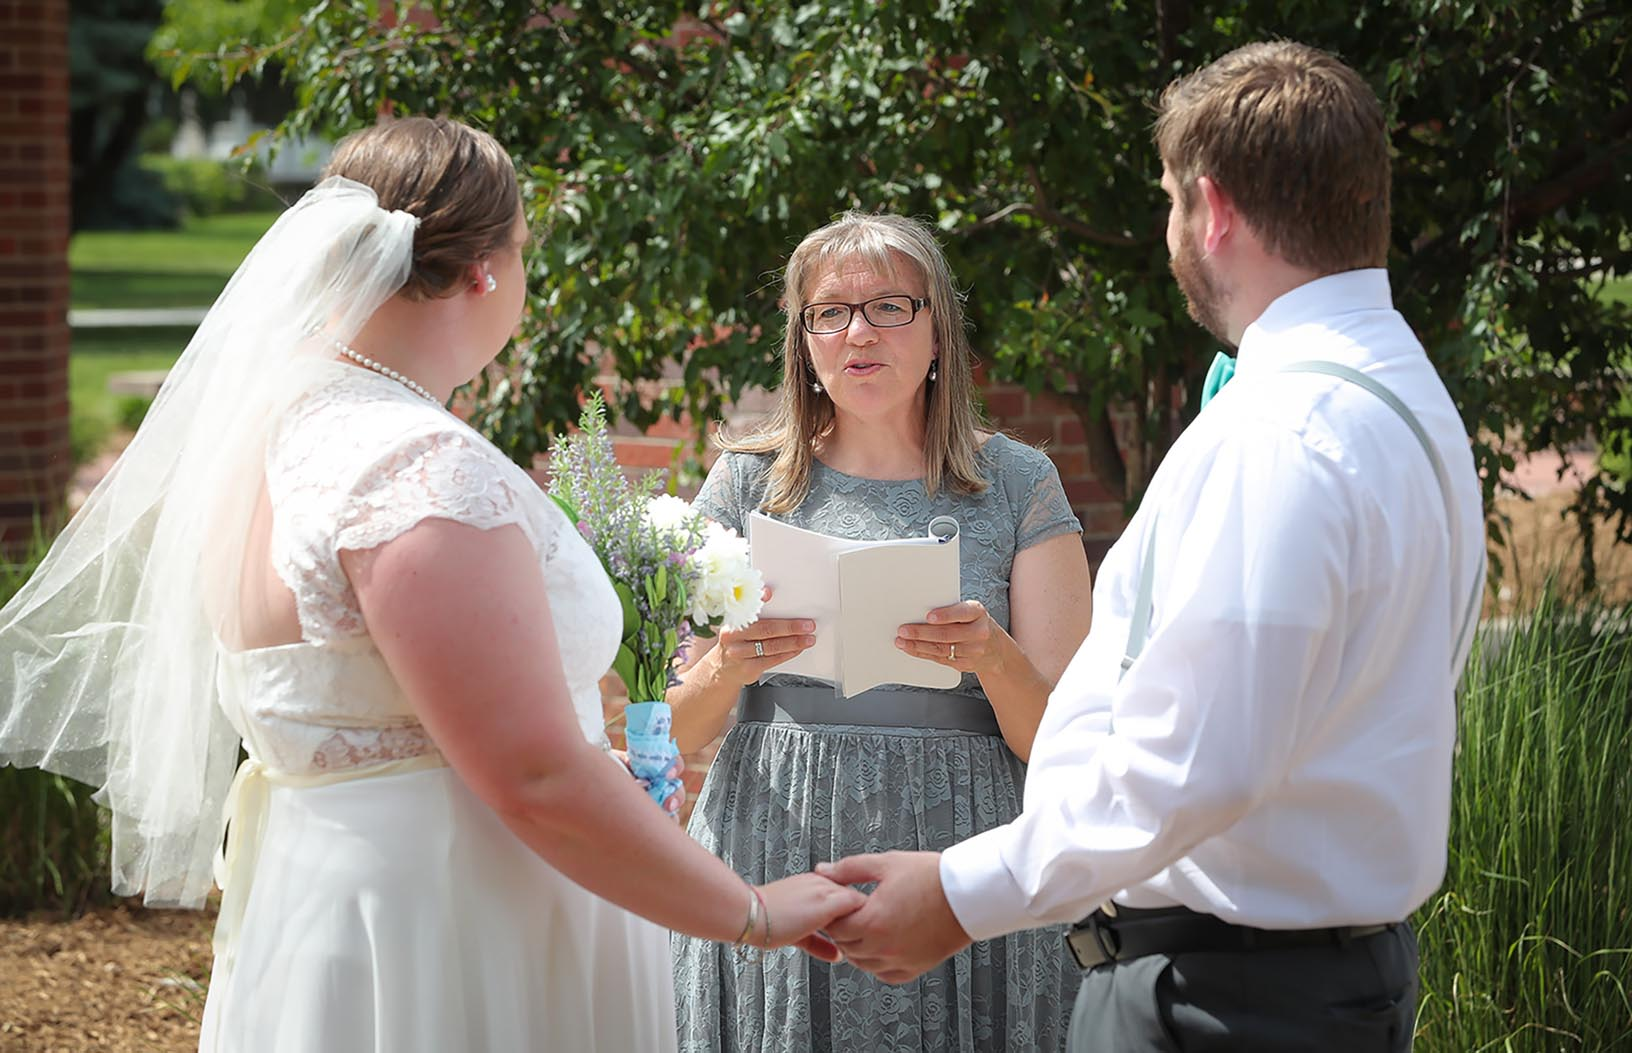 UNK biology professor Kim Carlson, center, officiates Saturday as Alexis Page and Nick Hobbs are married on the UNK campus.